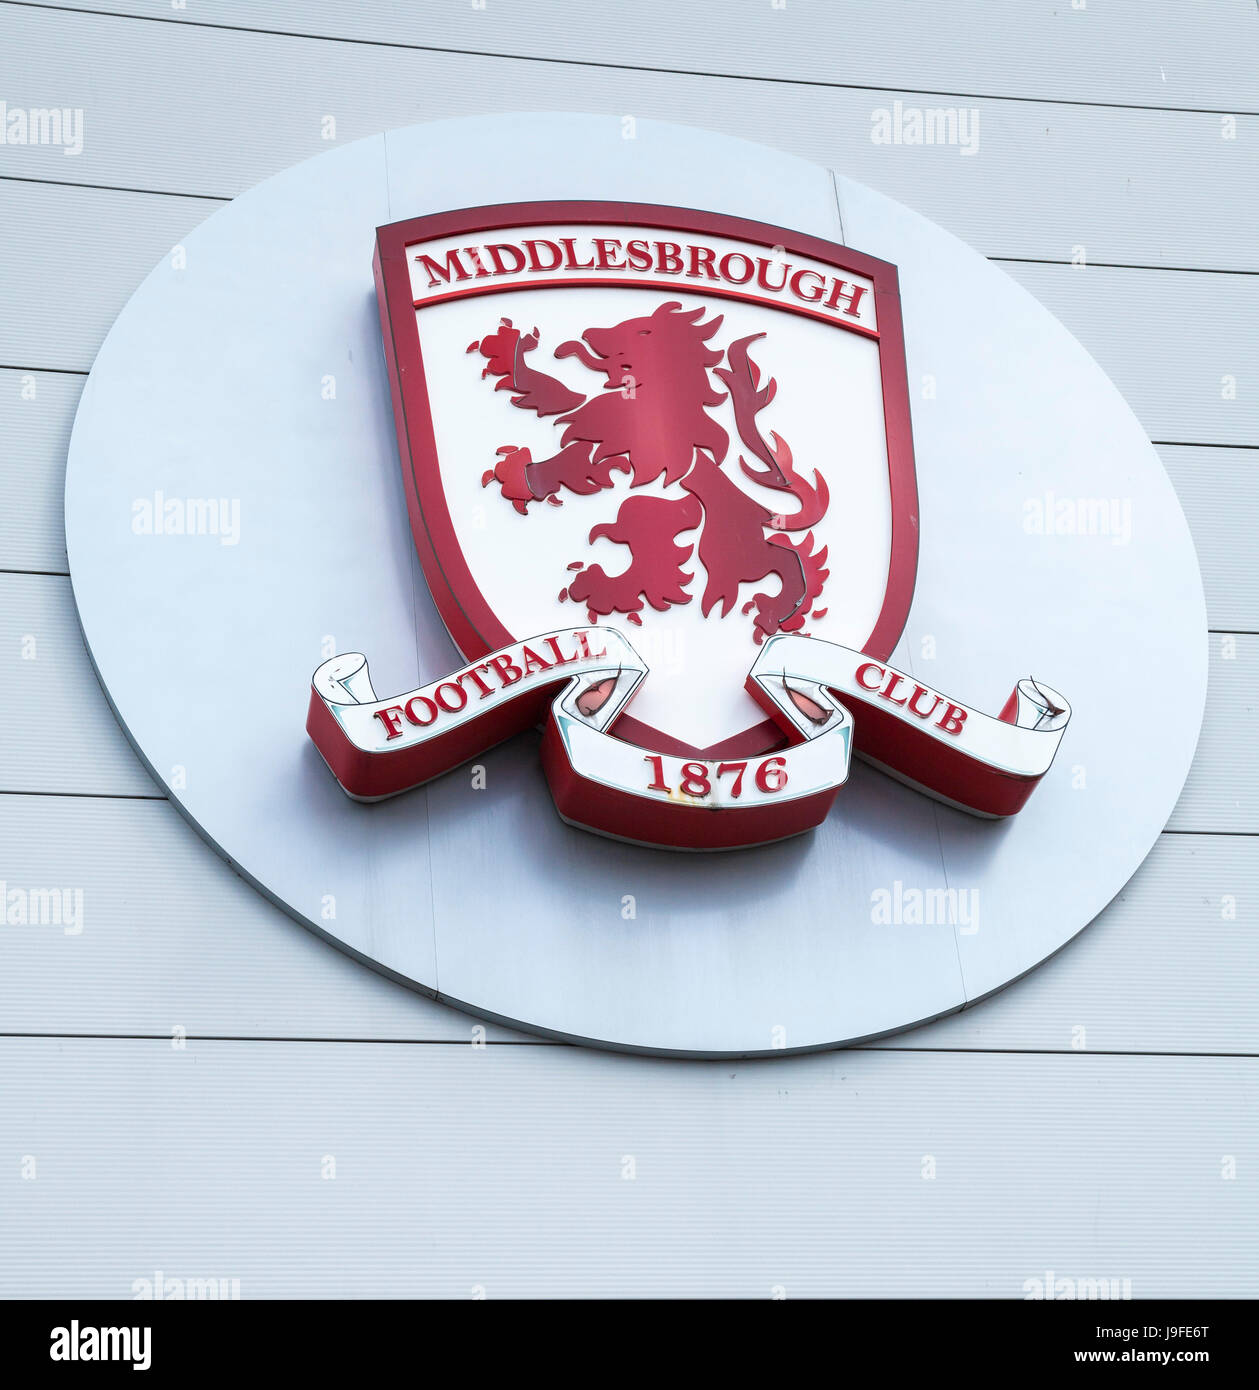 Close up of the club badge of Middlesbrough Football Club,England,UK - Stock Image